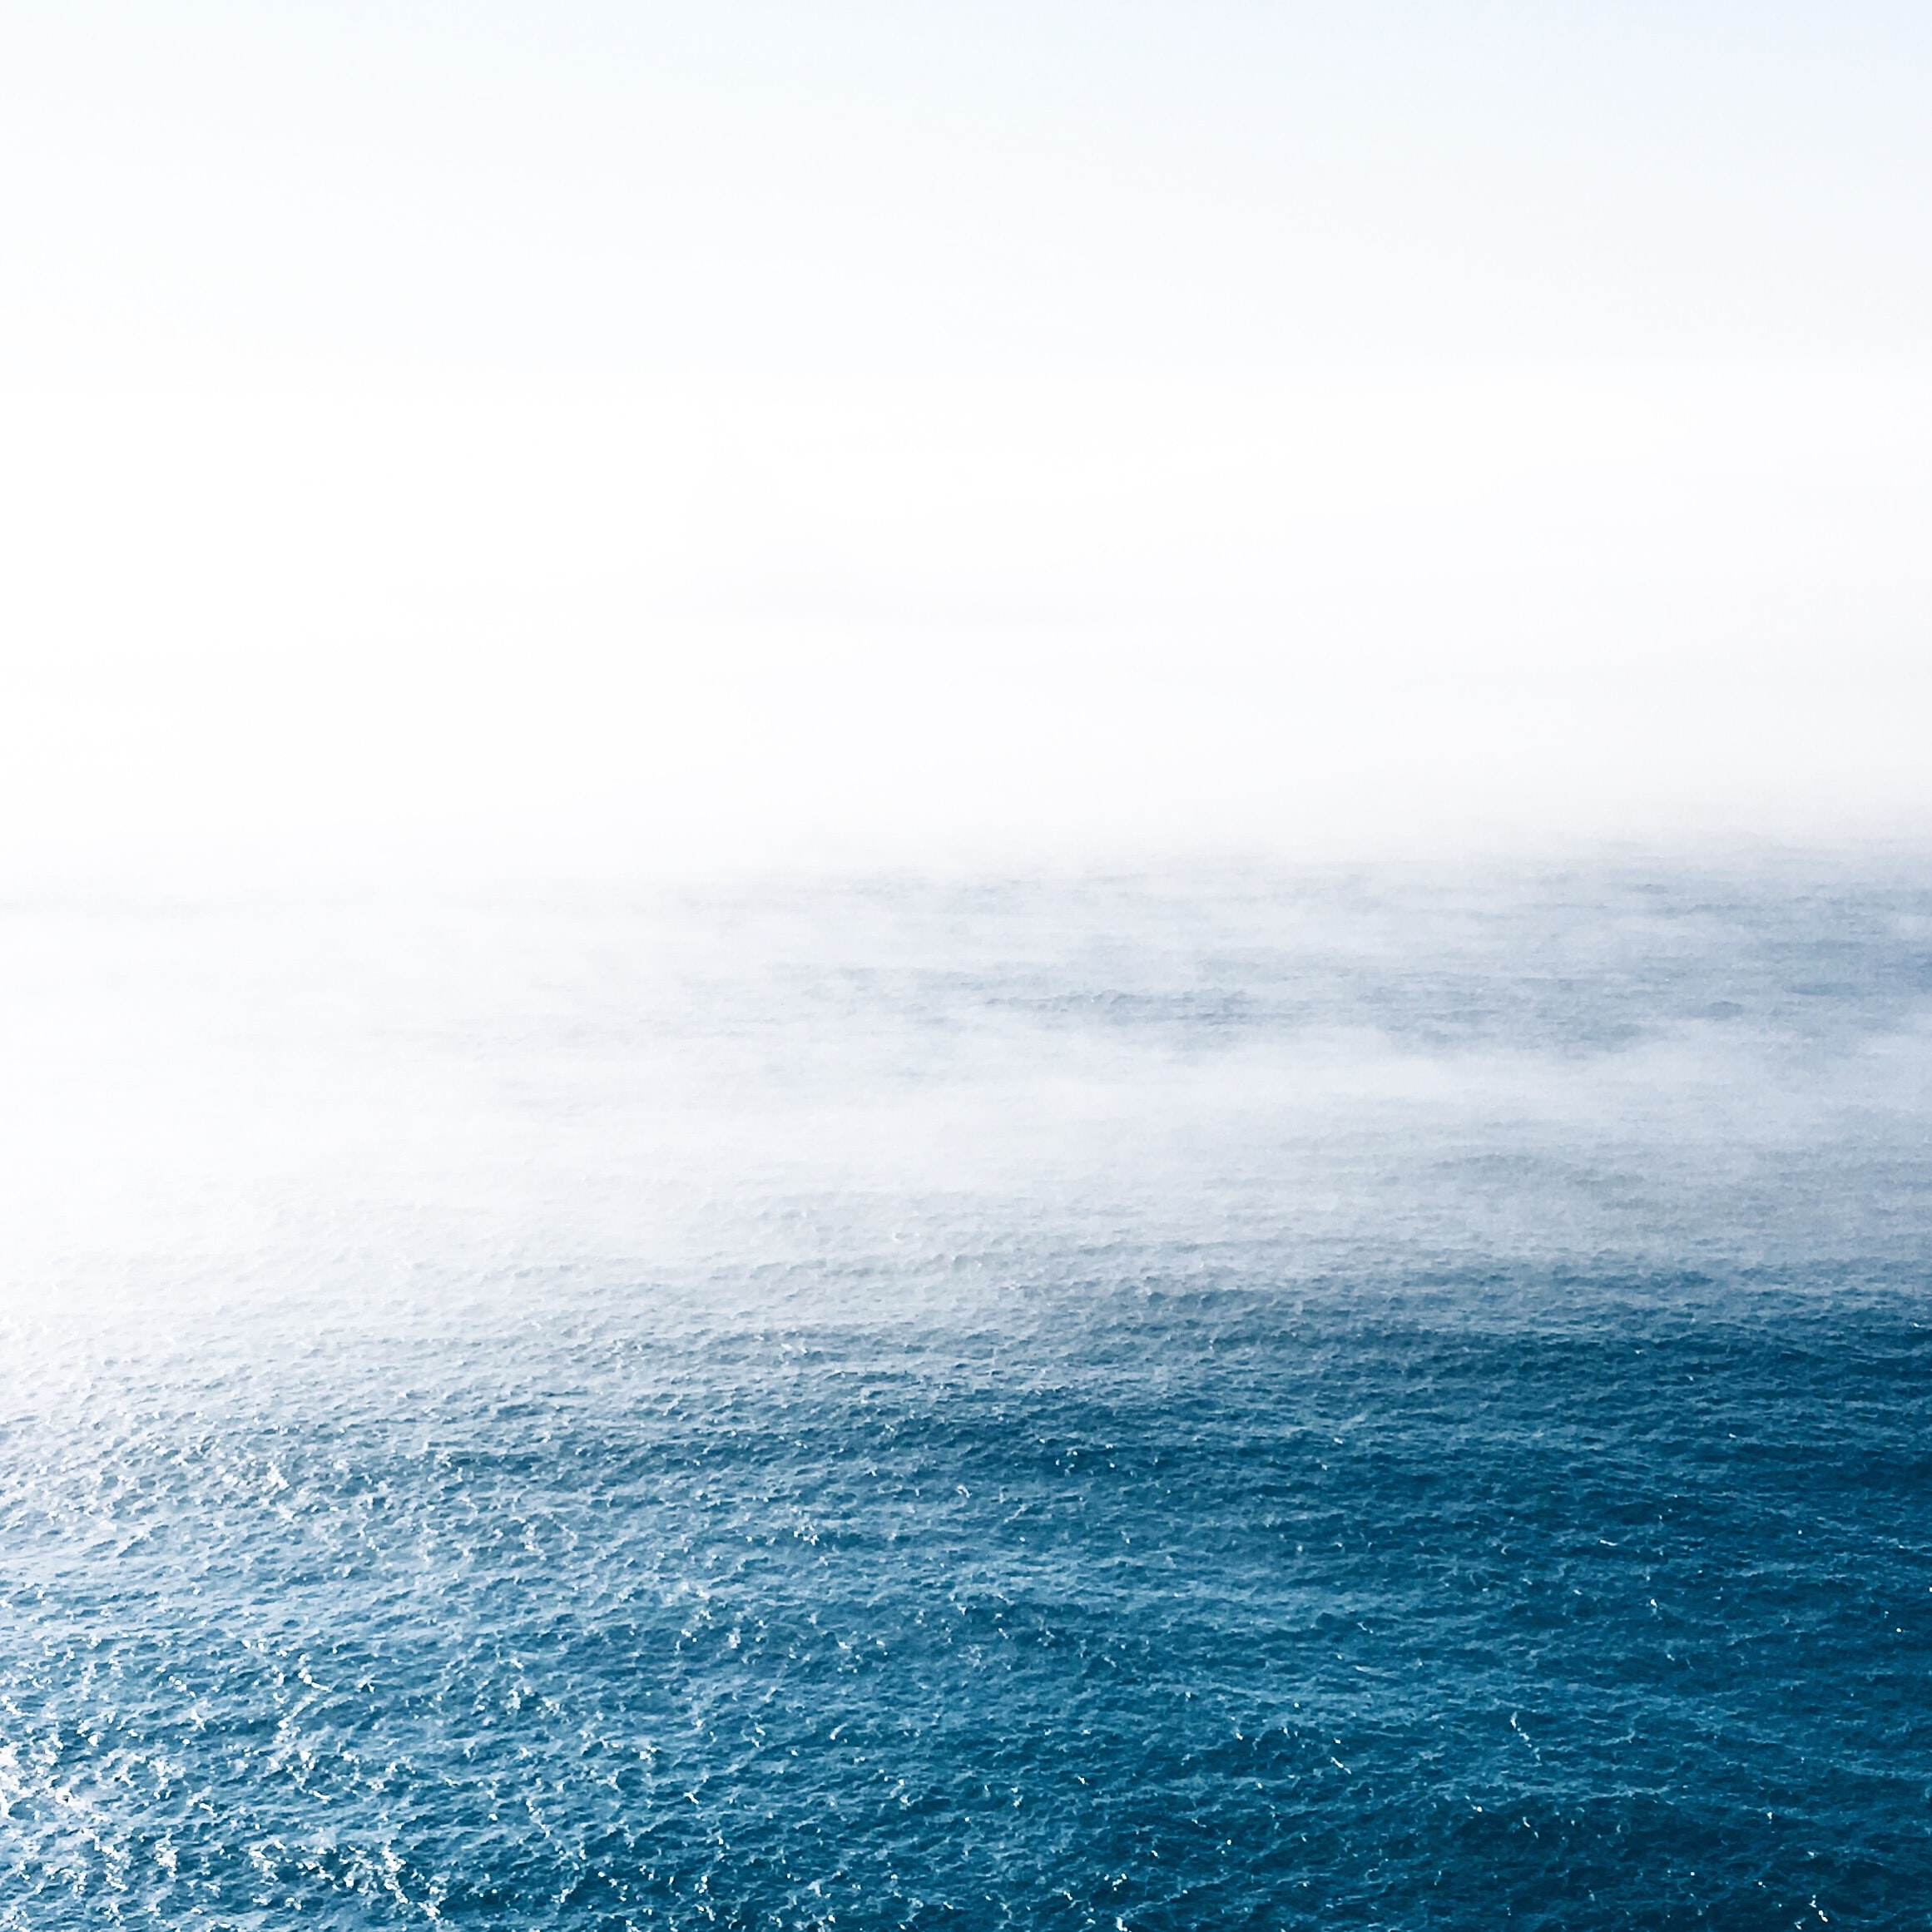 Fog rolls over wavy blue waters in Portugal